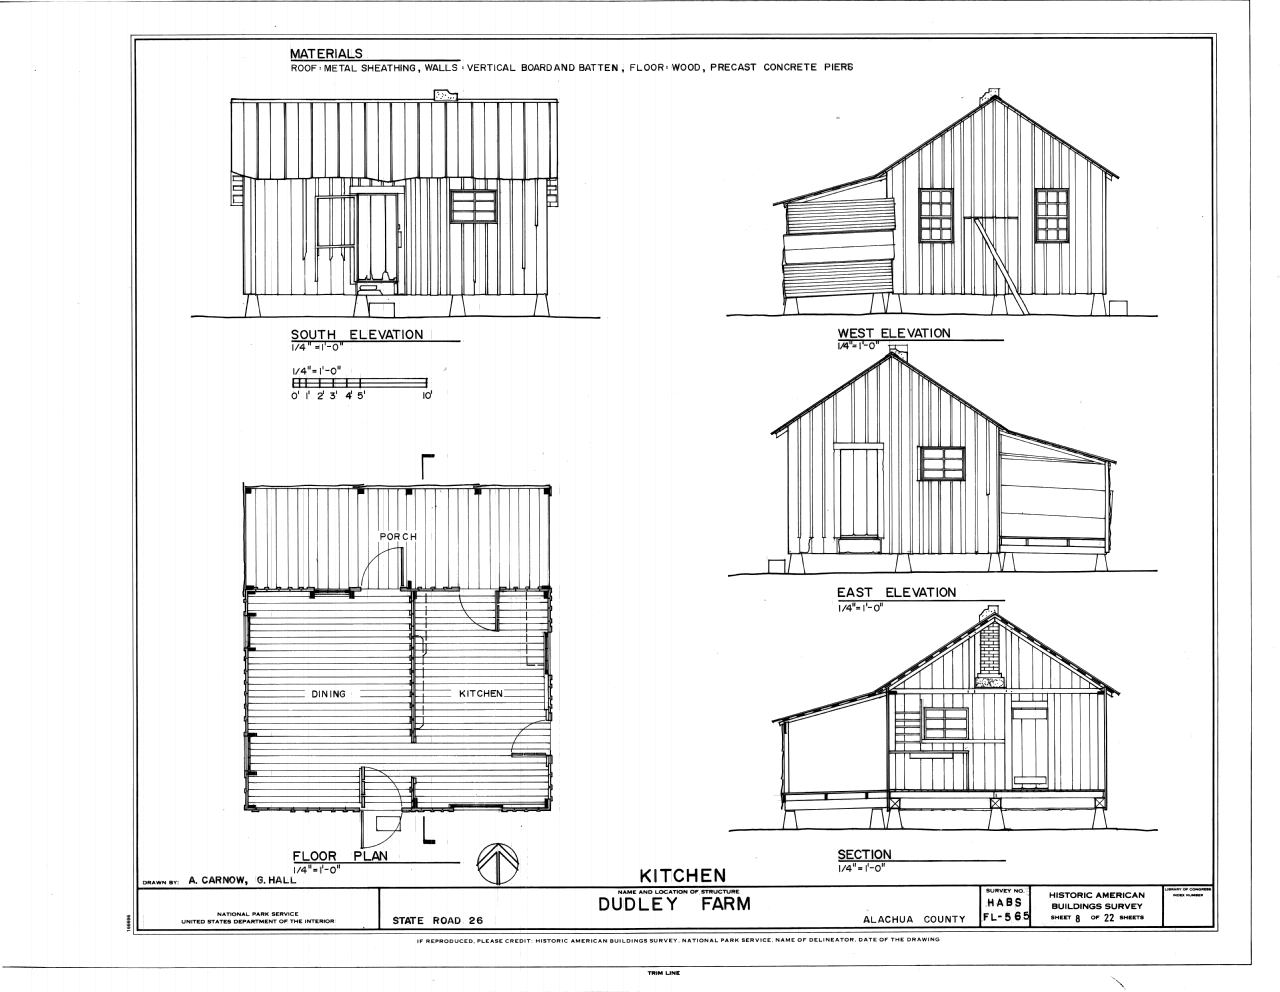 File Kitchen Elevations Floor Plan and Section Dudley Farm